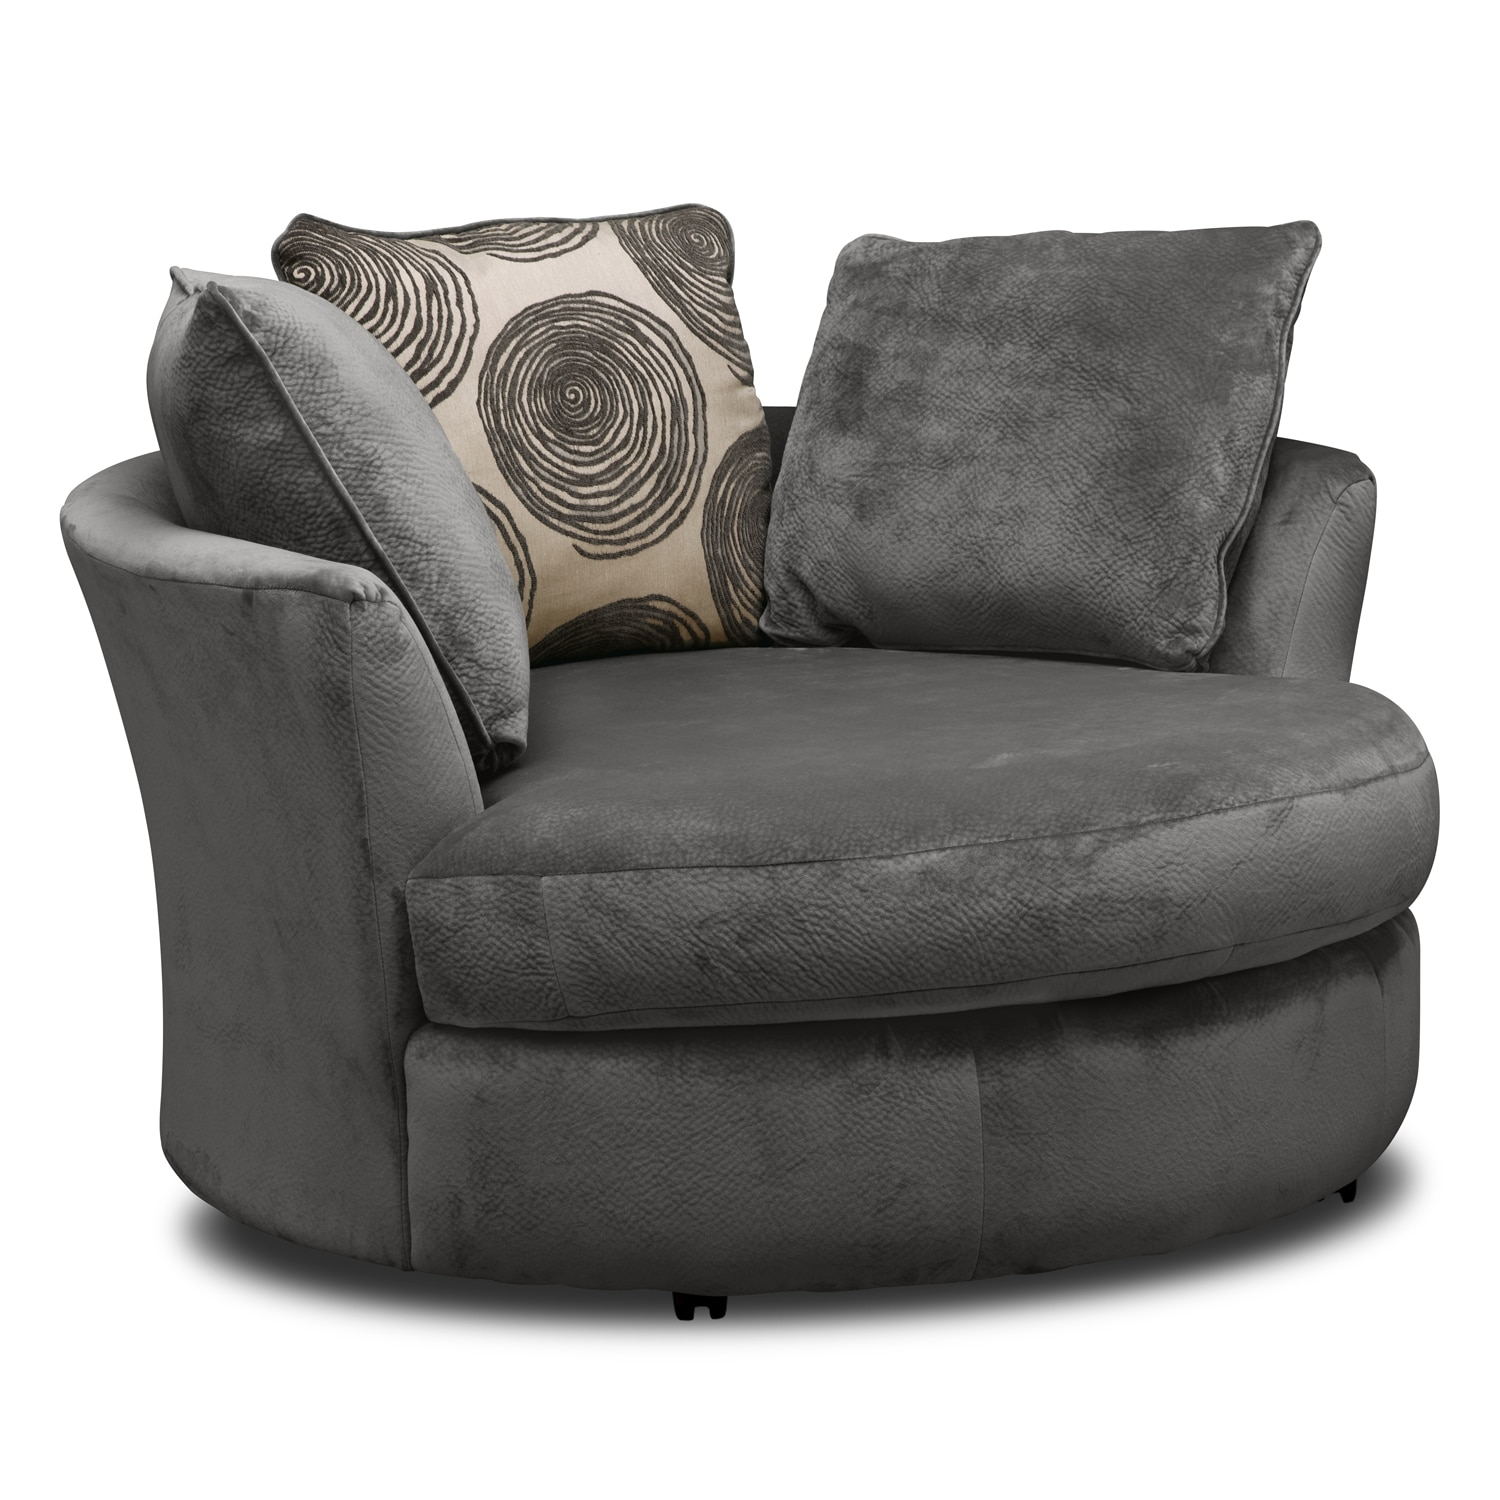 Living Room Furniture   Cordelle Swivel Chair   Gray